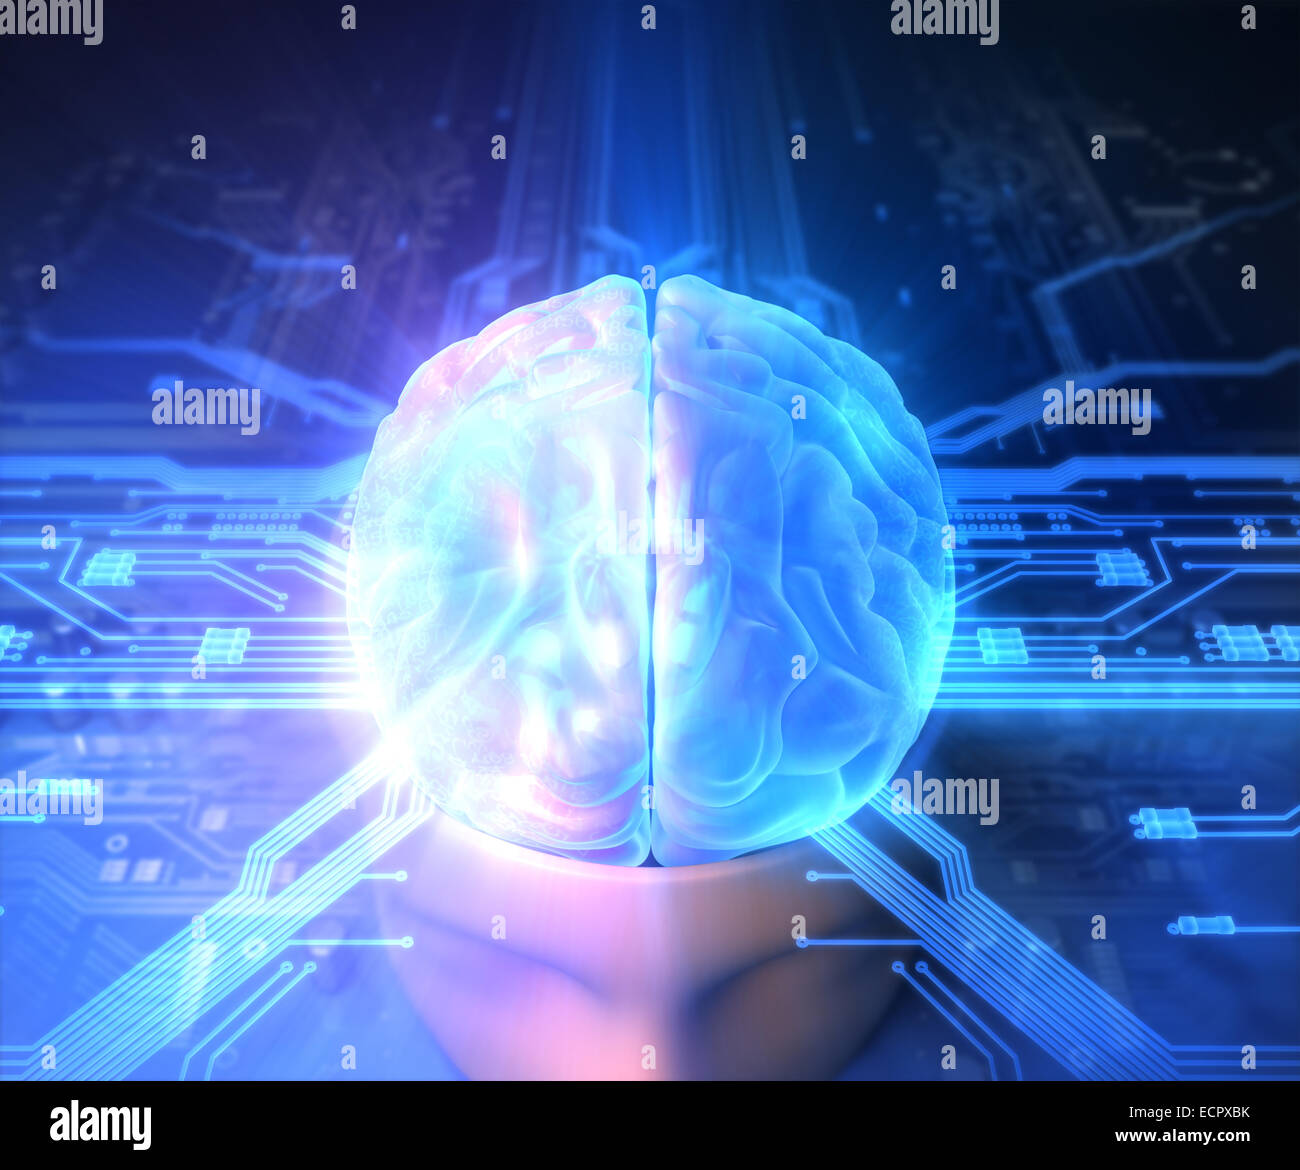 Human brain and circuit board. - Stock Image